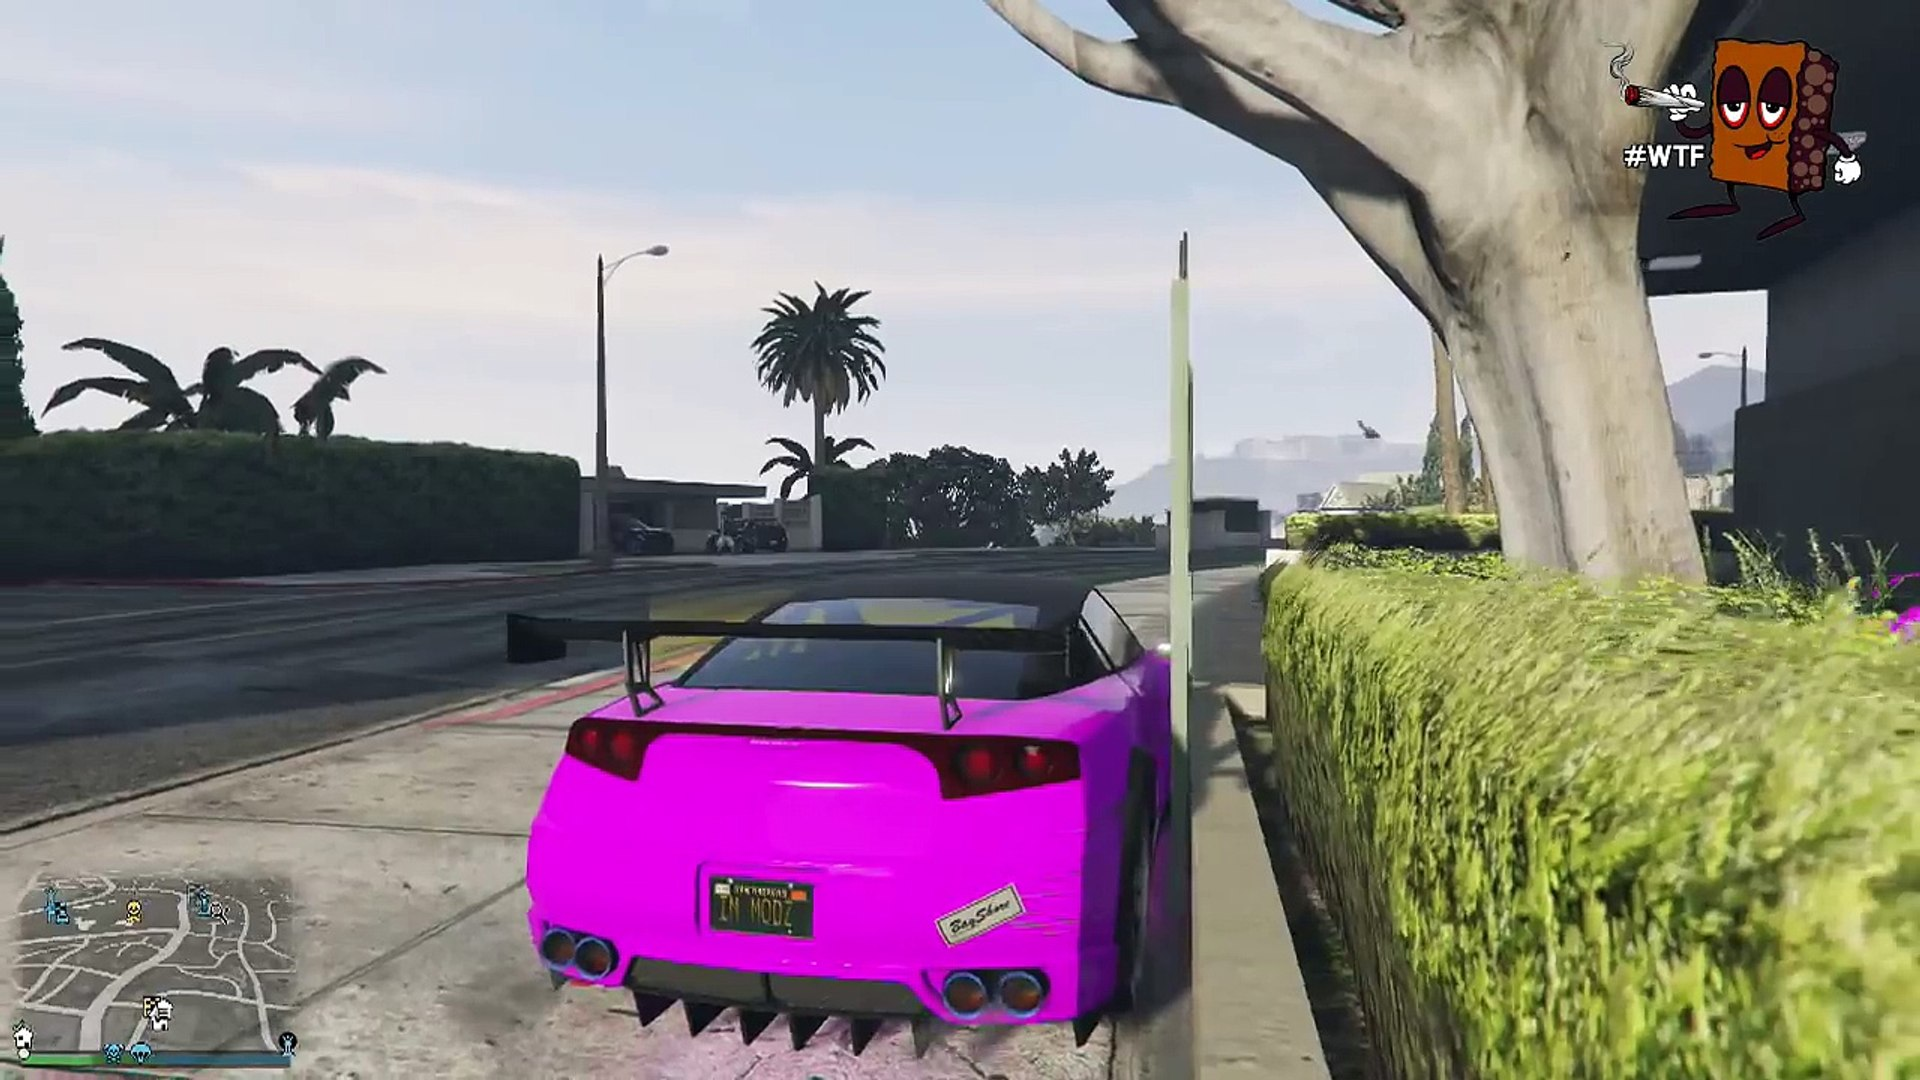 (PATCHED) GTA 5 Glitches Give friends cars / Money glitch after patch 1.20/ 1.22 (All Systems)